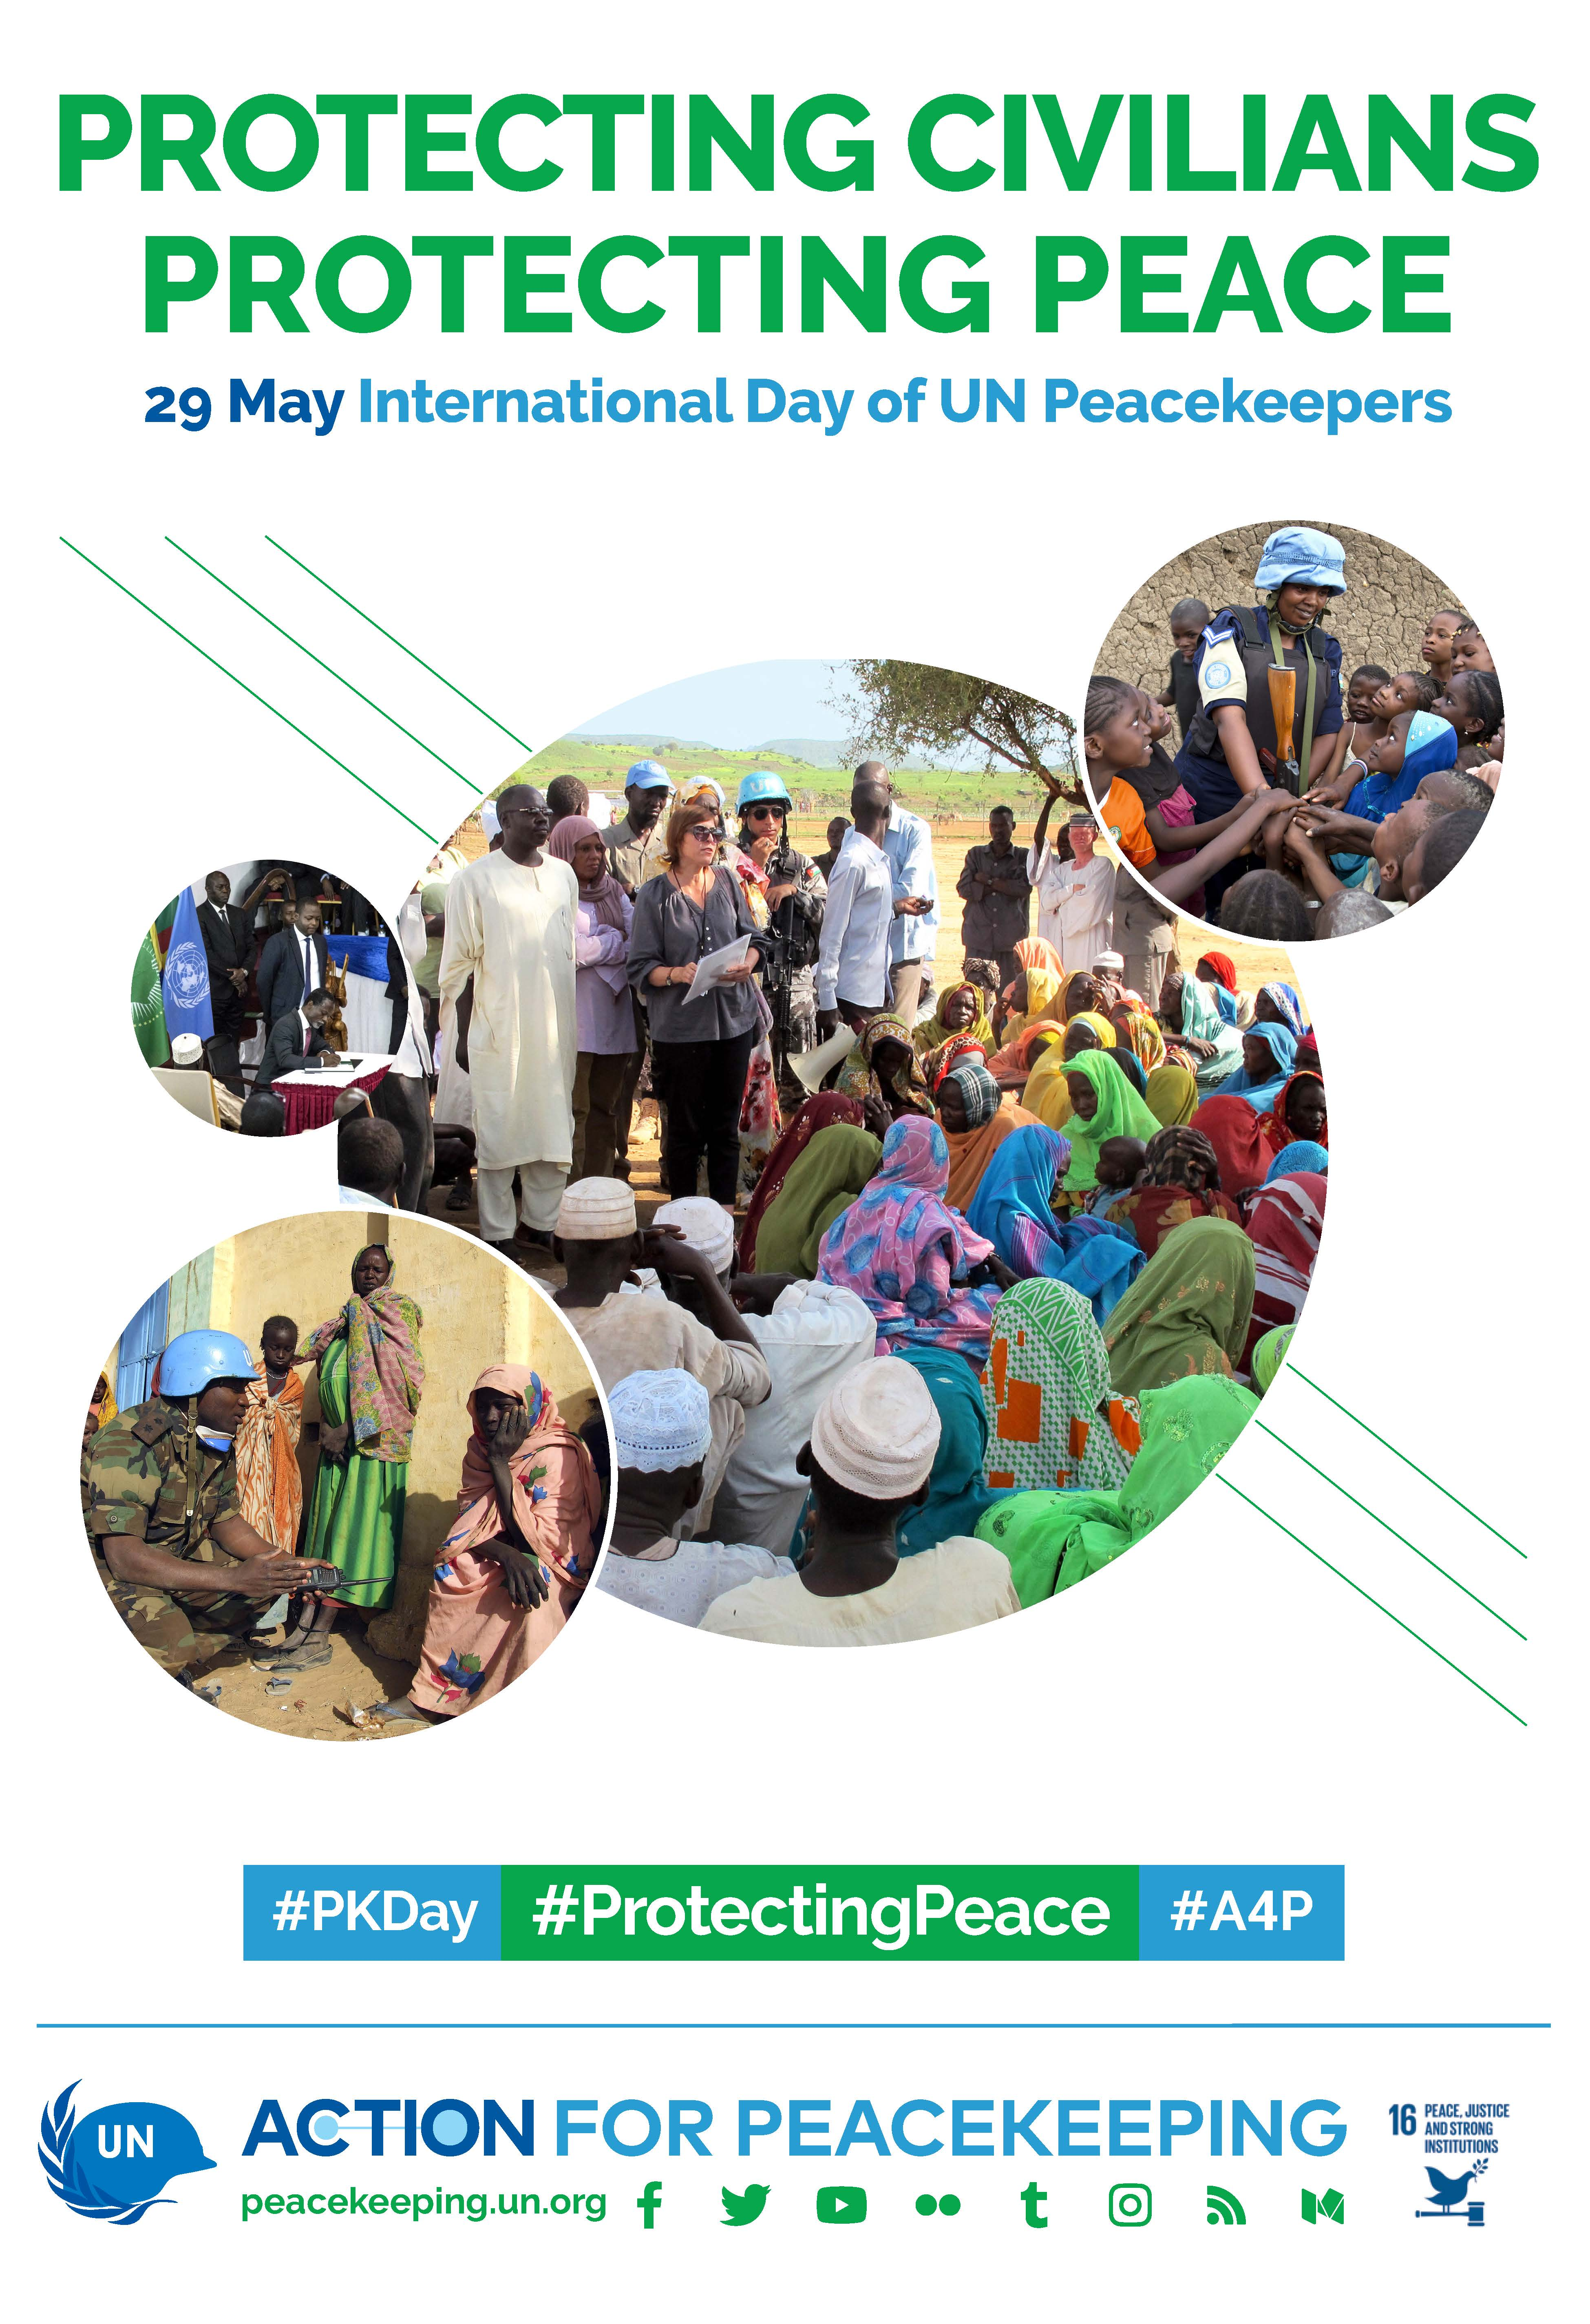 Protecting Civilians Protecting Peace - campaign poster with several images of blue helmet UN staff in the field working with civilians